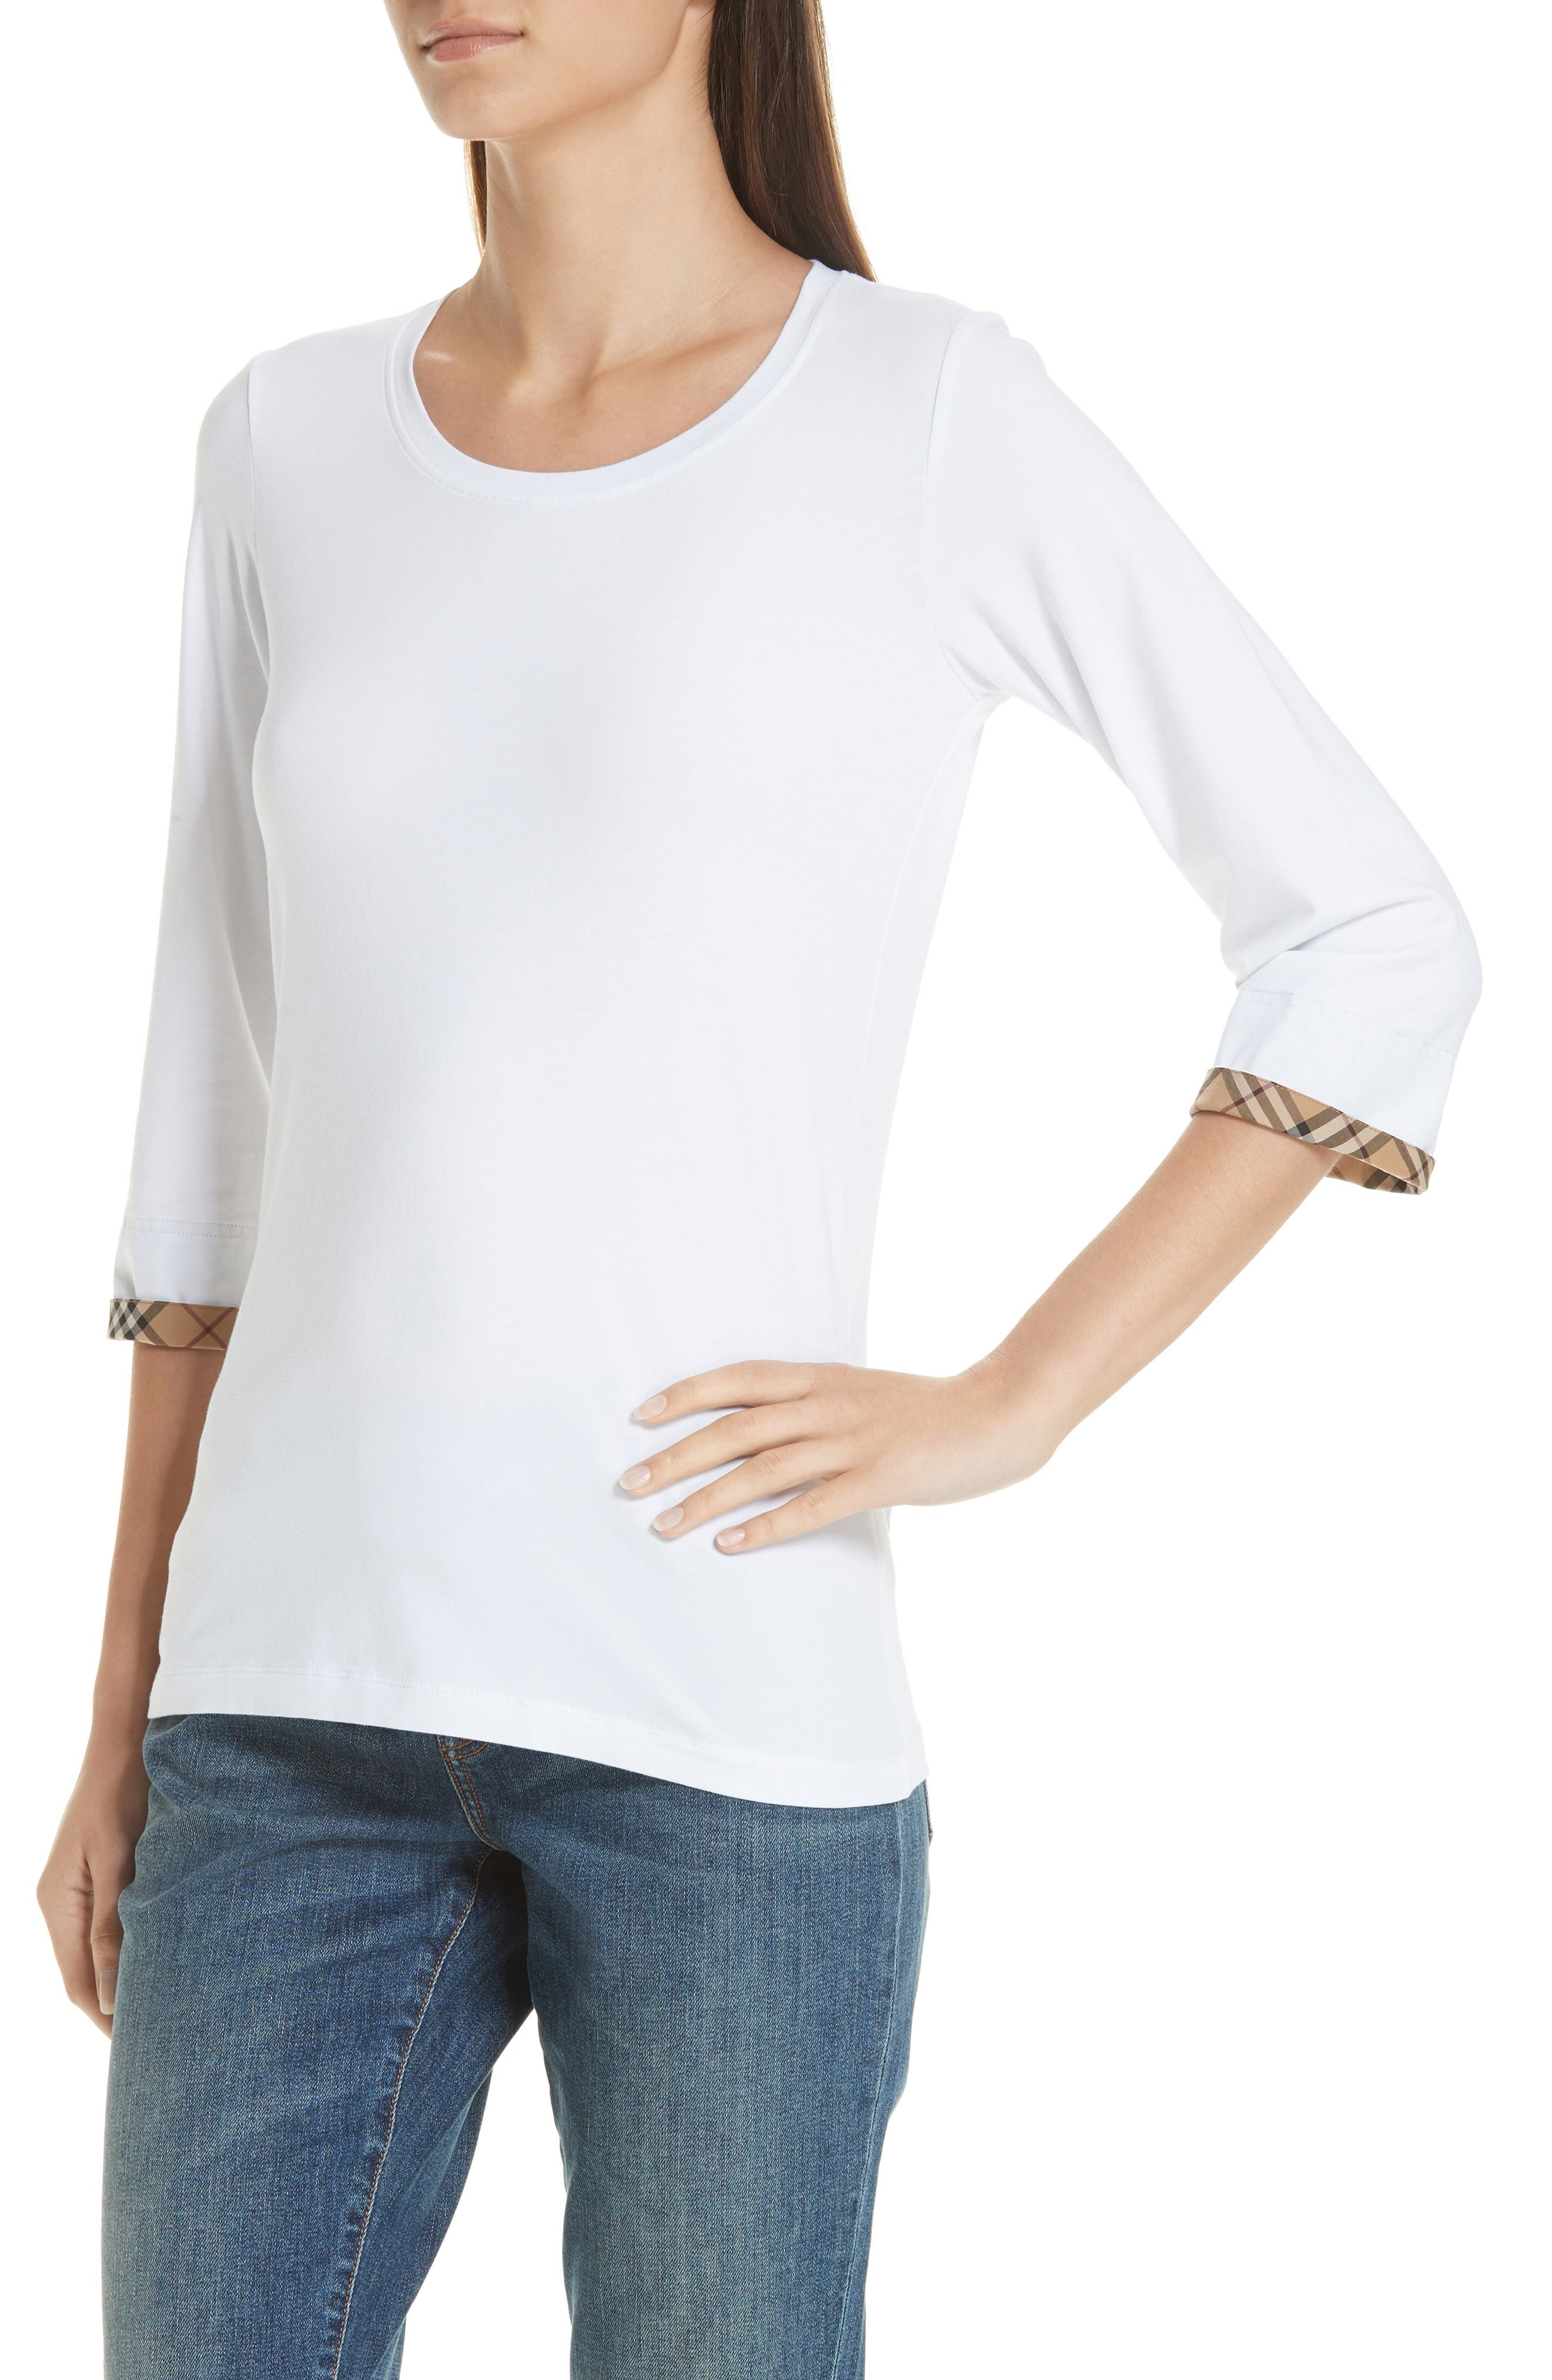 Lohit Check Cuff Stretch Cotton Tee,                             Alternate thumbnail 4, color,                             100